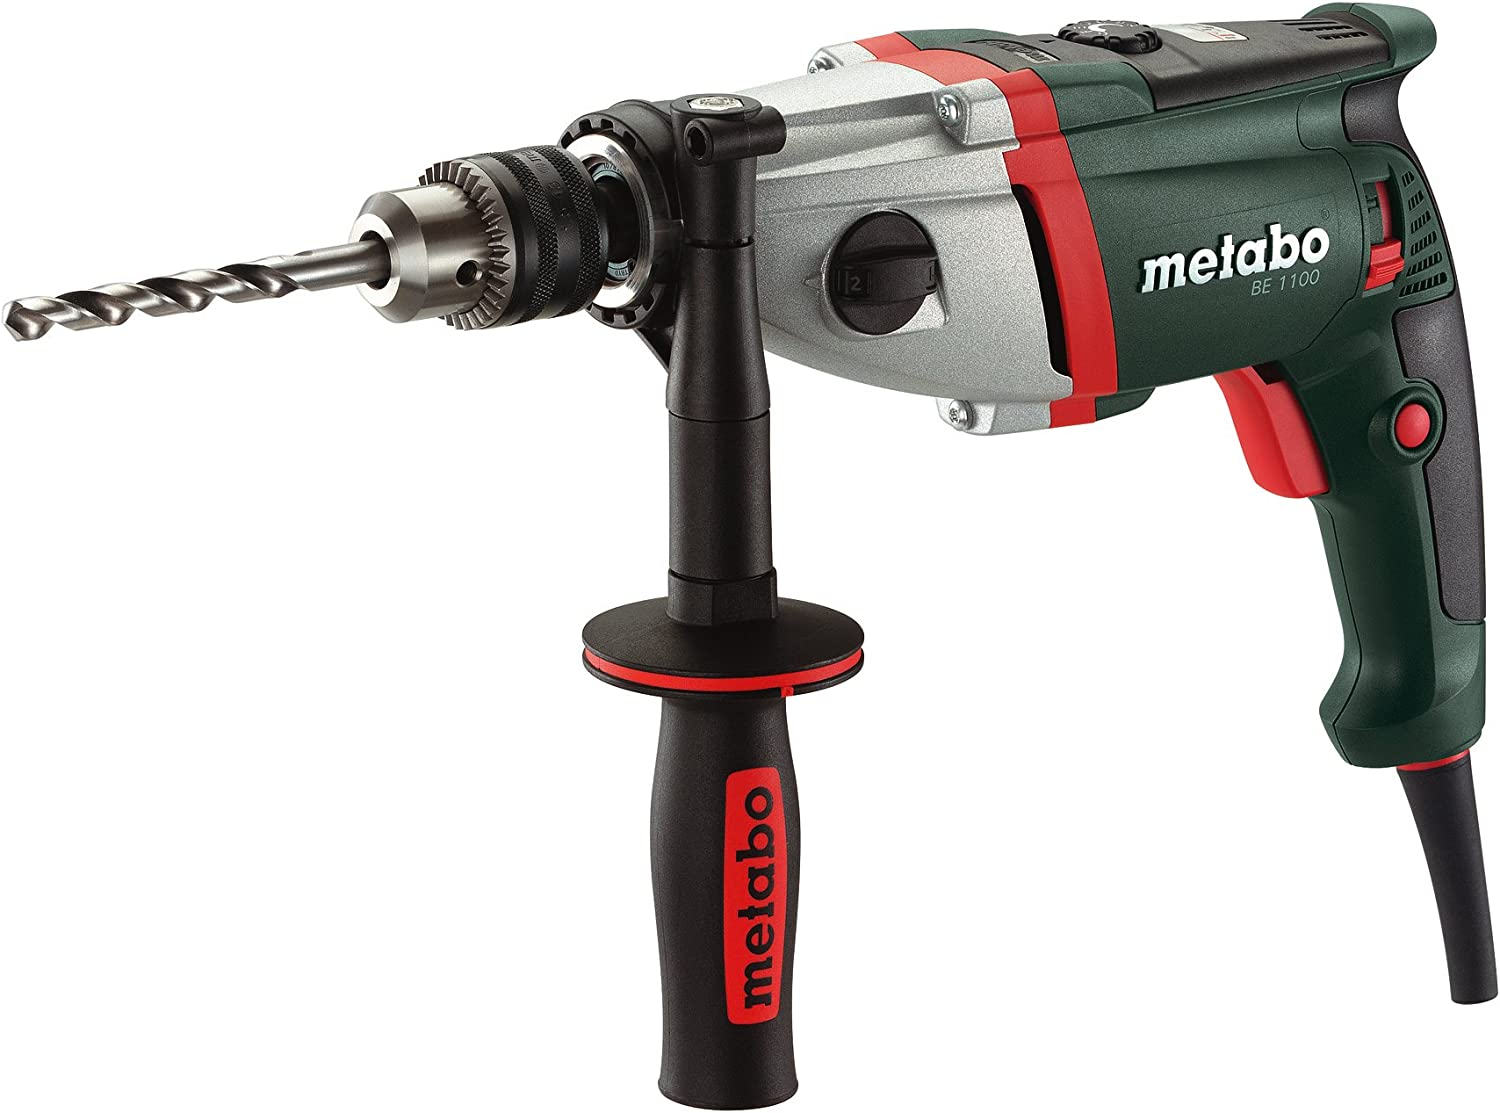 Metabo BE 1100 0-900 0-2,800 RPM 9.6 AMP 1 2-Inch 2 Speed Drill